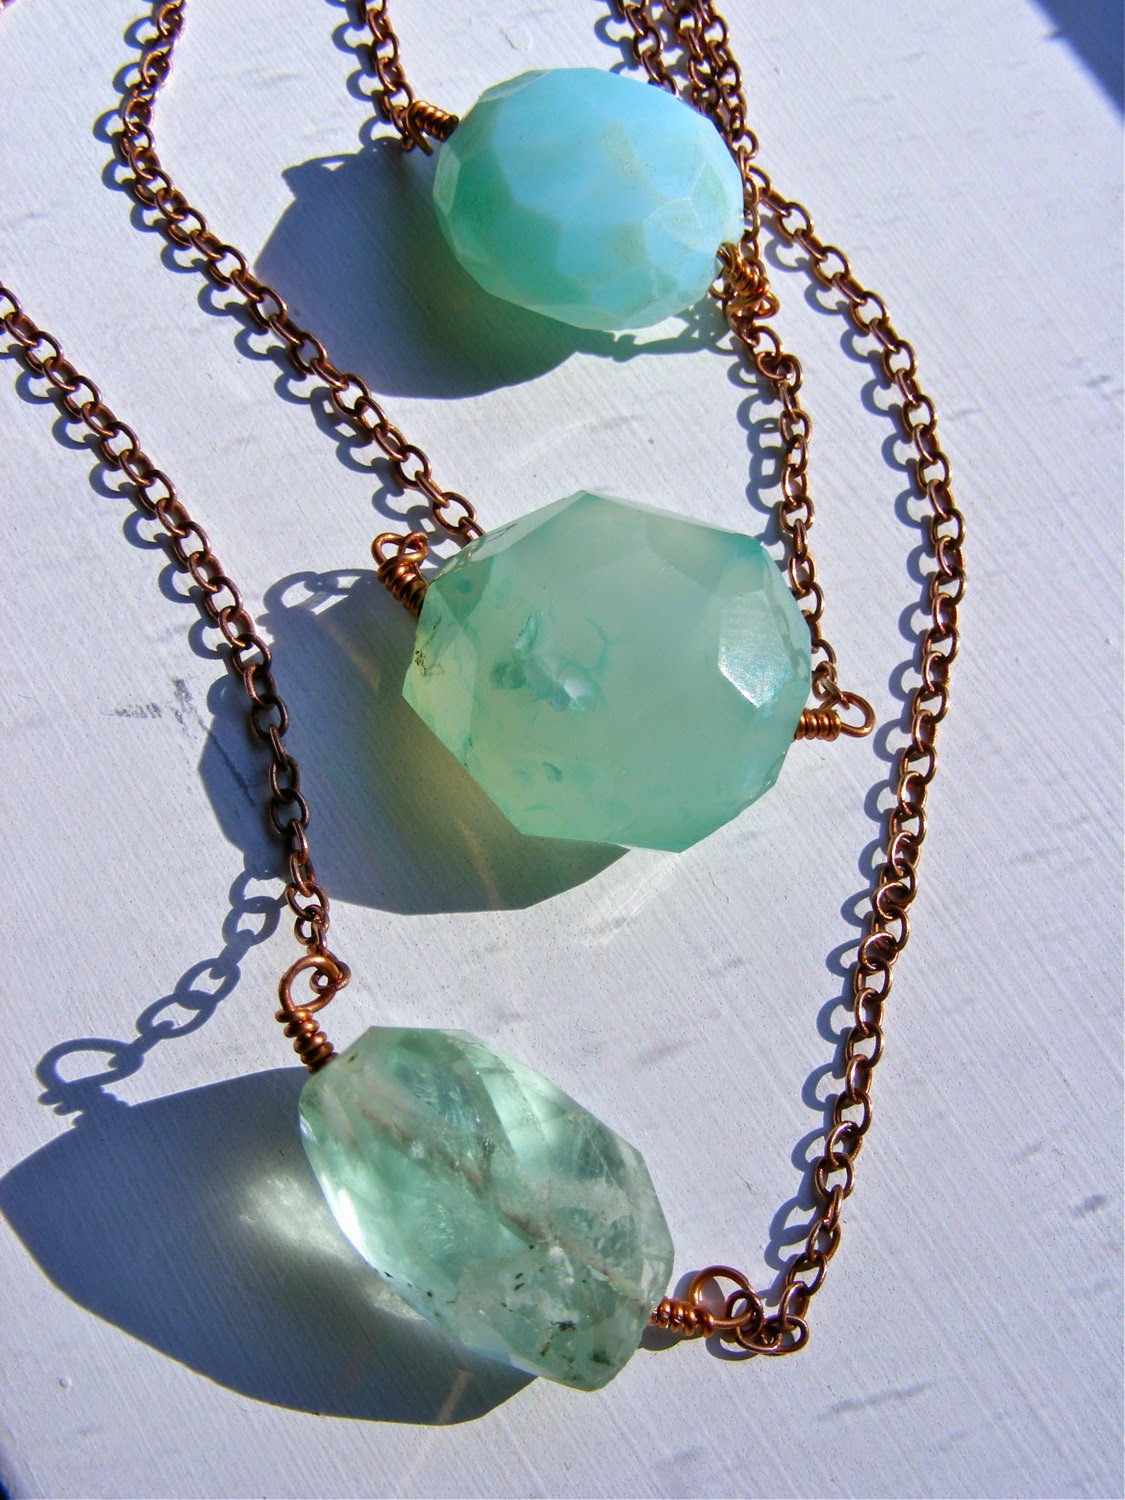 https://www.etsy.com/listing/224994669/saltwater-necklace-sea-green-natural?ref=shop_home_active_10